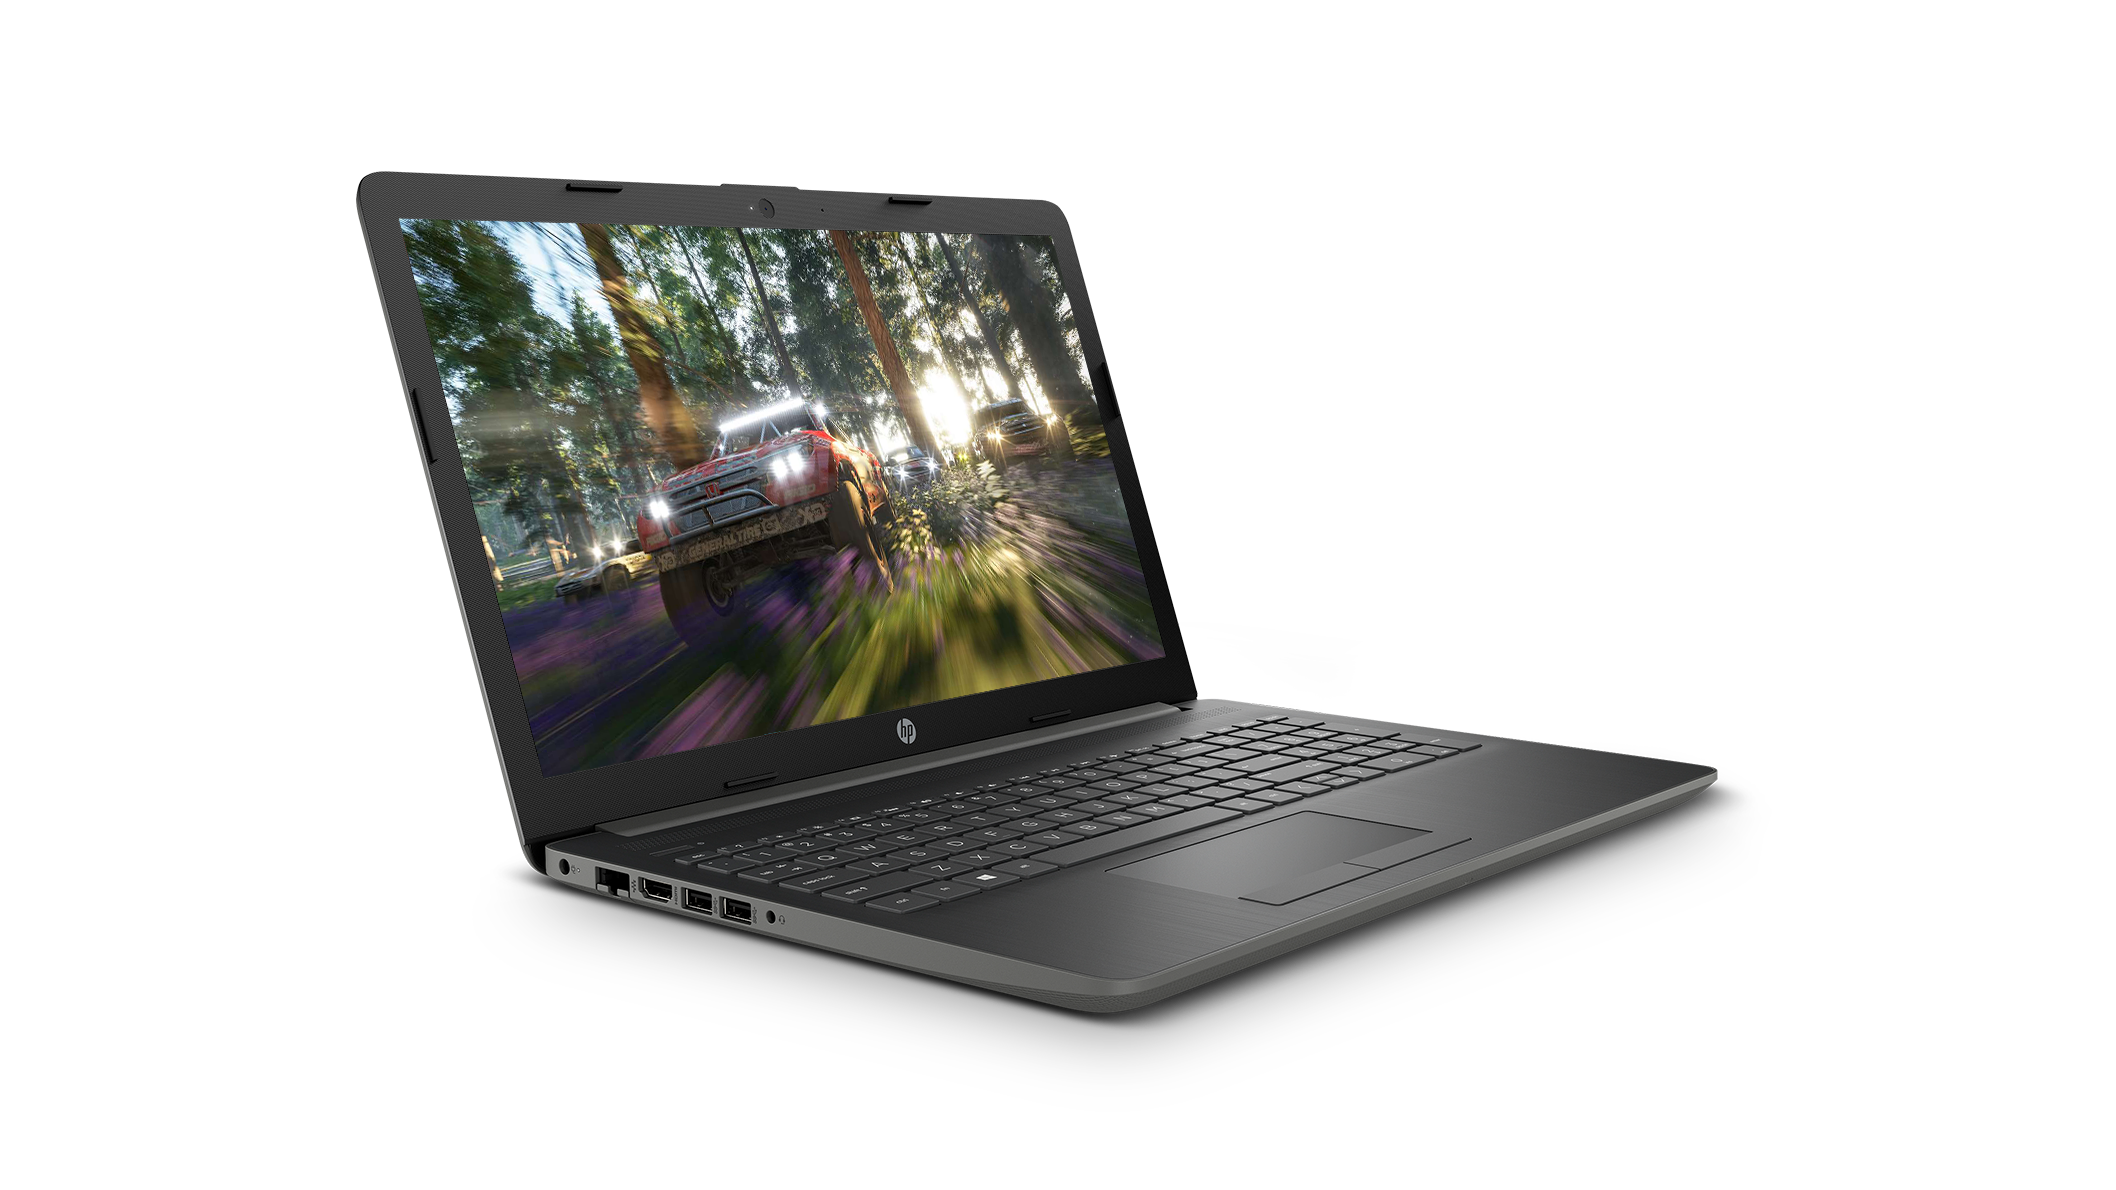 Front right view of the HP 15 laptop